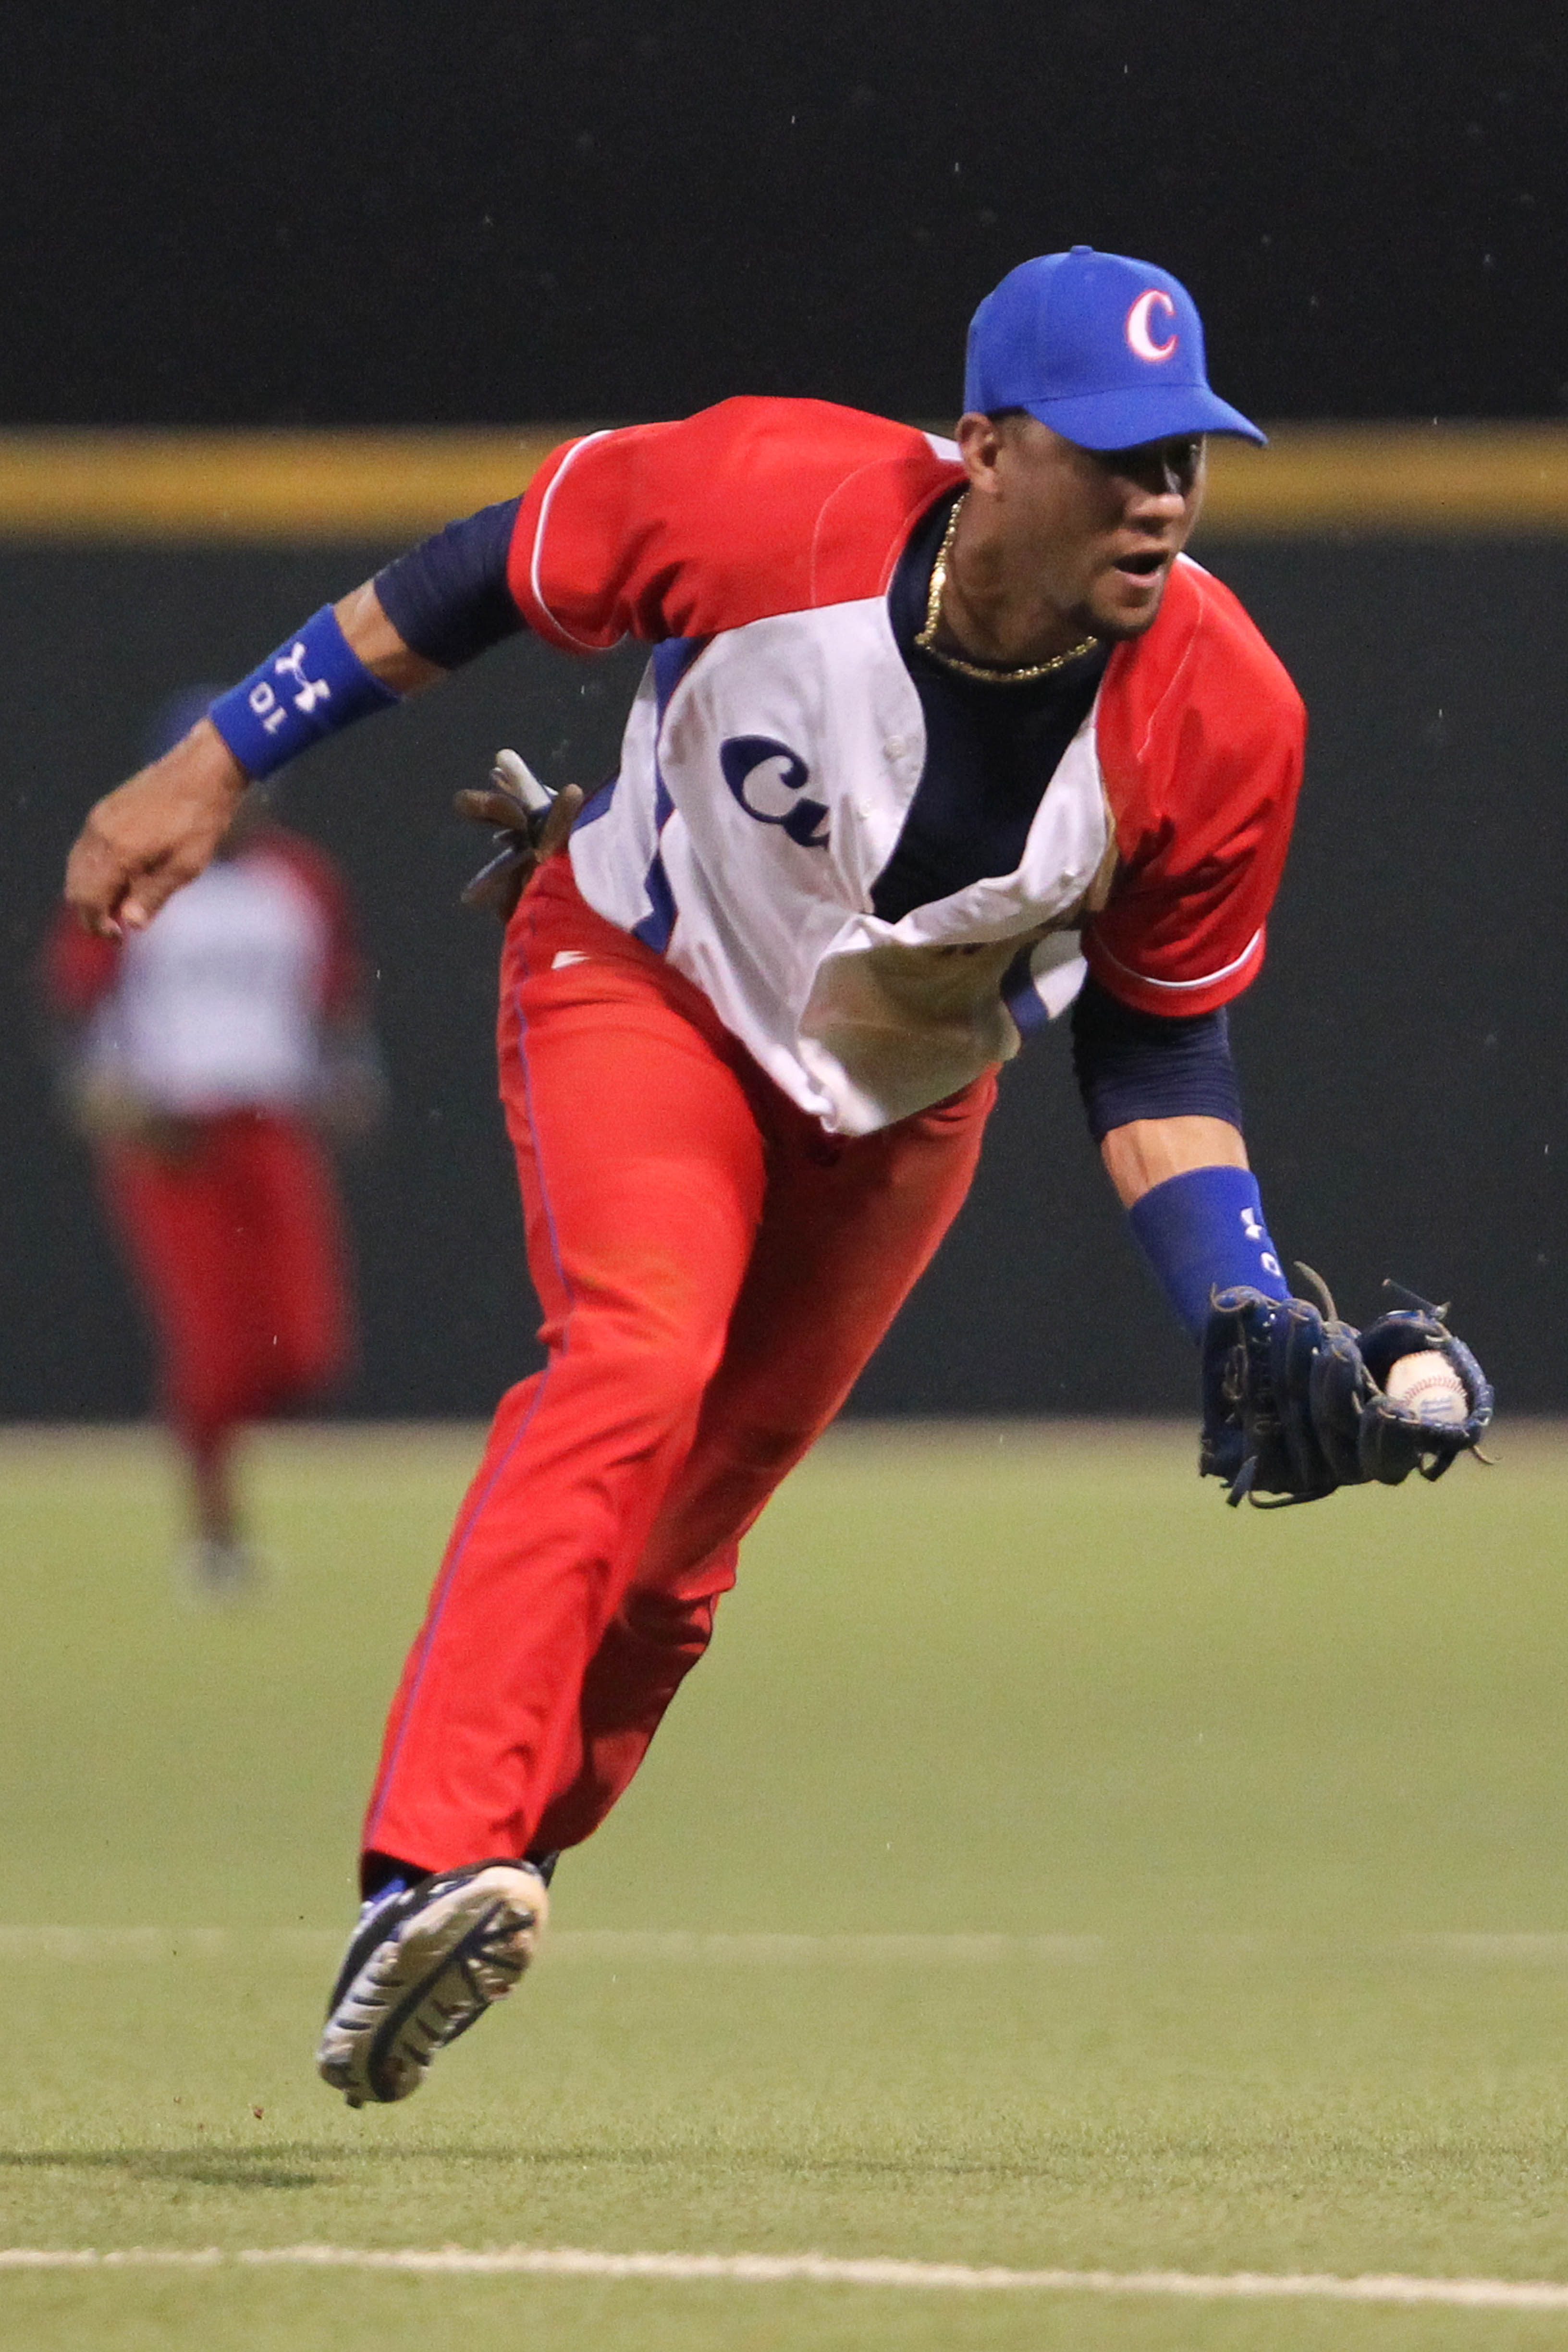 Cuba second baseman Yulieski Gurriel fields a ground ball during a Caribbean Series baseball game against Puerto Rico in San Juan, Puerto Rico, Wednesday, Feb. 4, 2015. (AP Photo/Ricardo Arduengo)